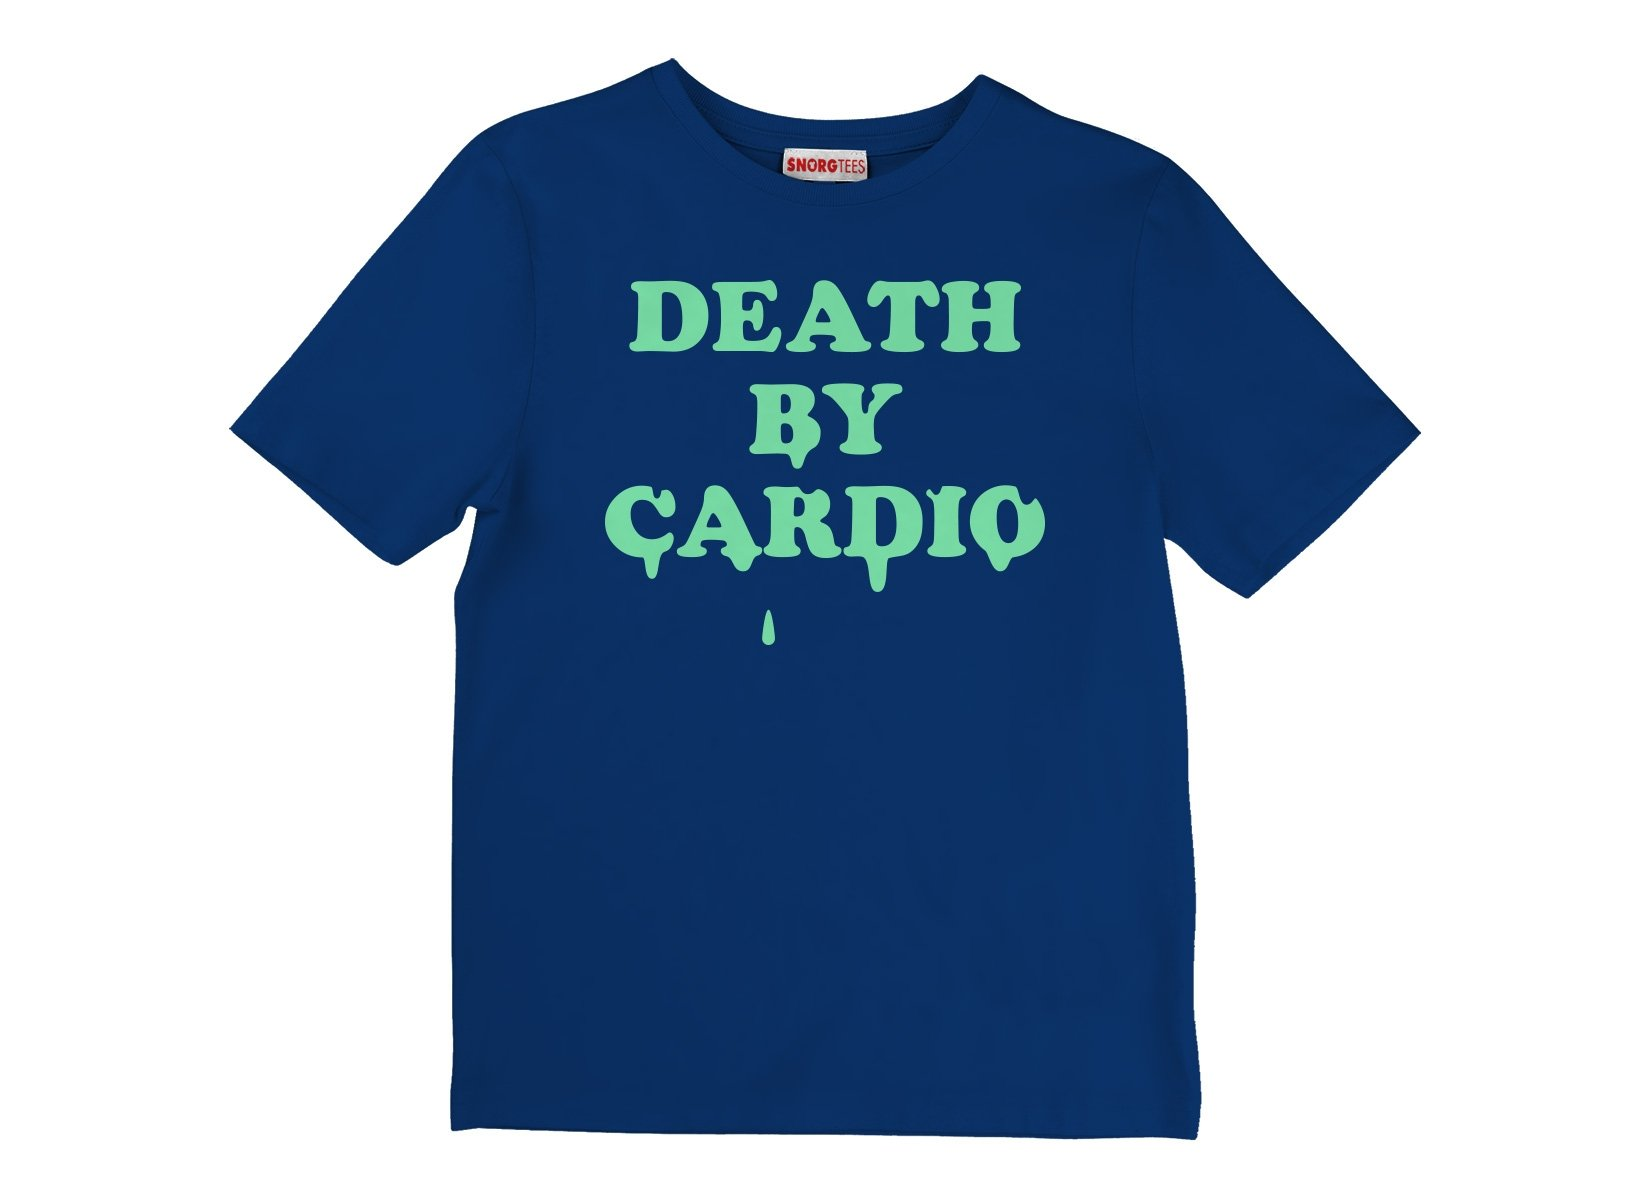 Death By Cardio on Kids T-Shirt